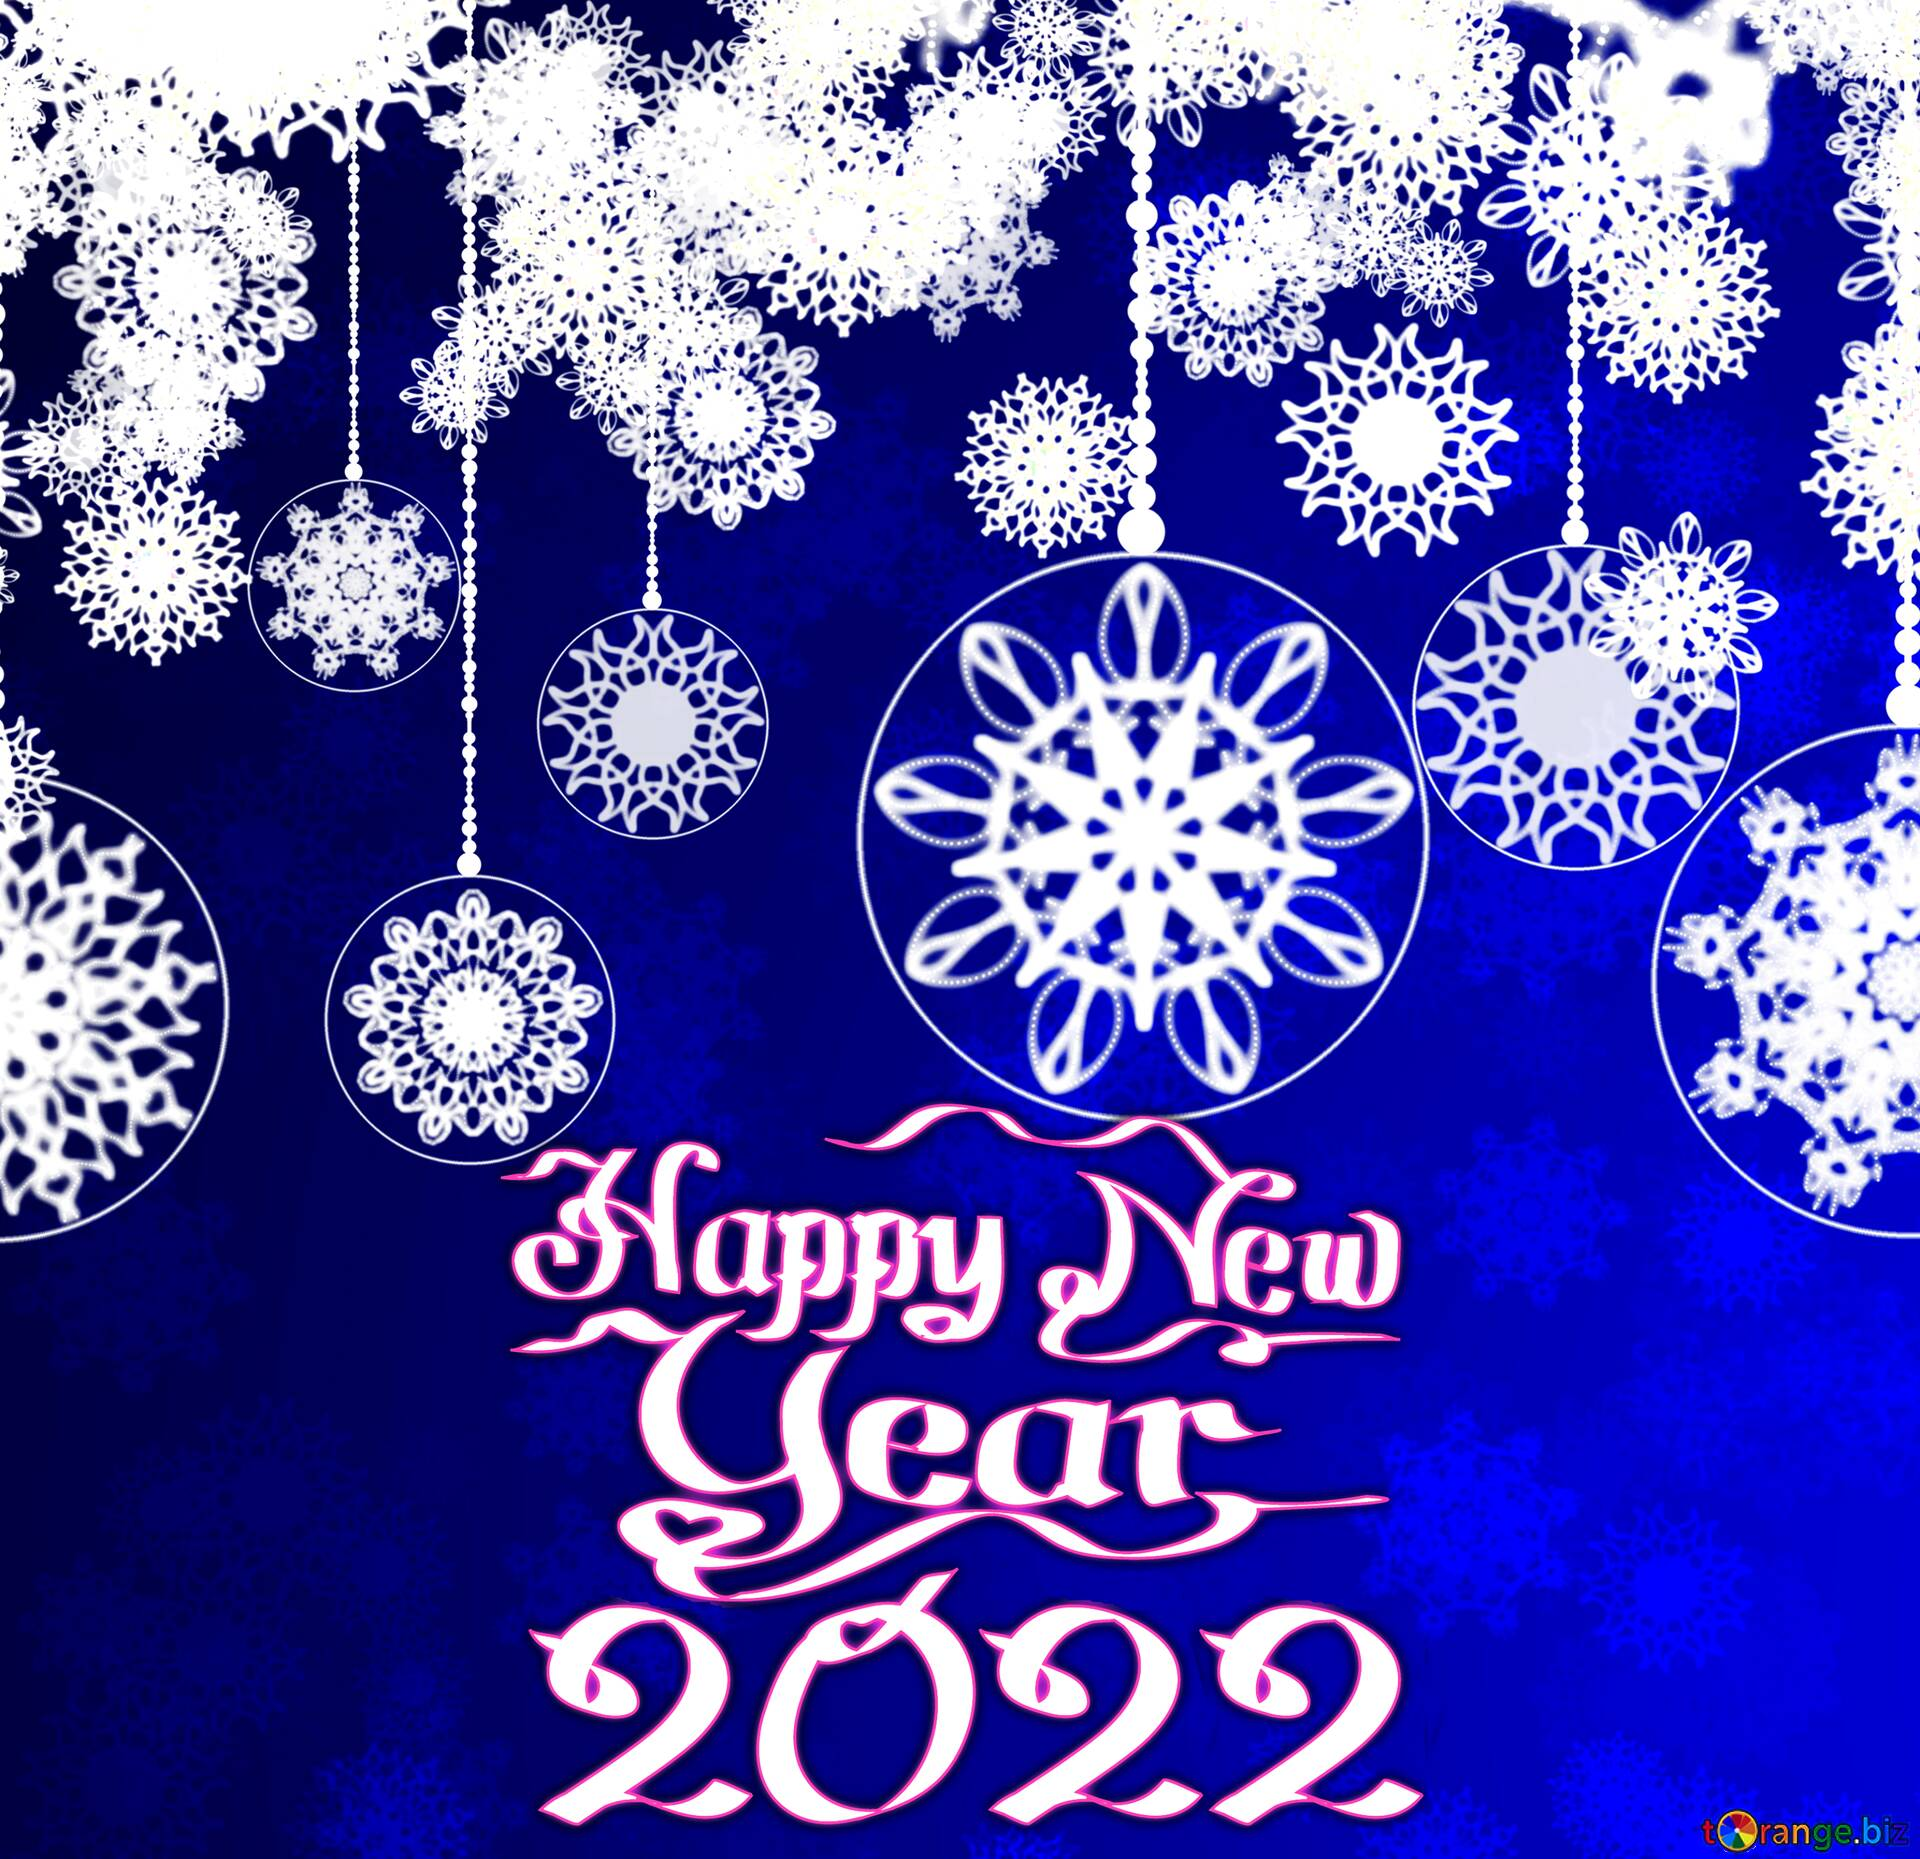 download free picture clipart christmas happy new year 2021 on cc by license free image stock torange biz fx 207347 download free picture clipart christmas happy new year 2021 on cc by license free image stock torange biz fx 207347